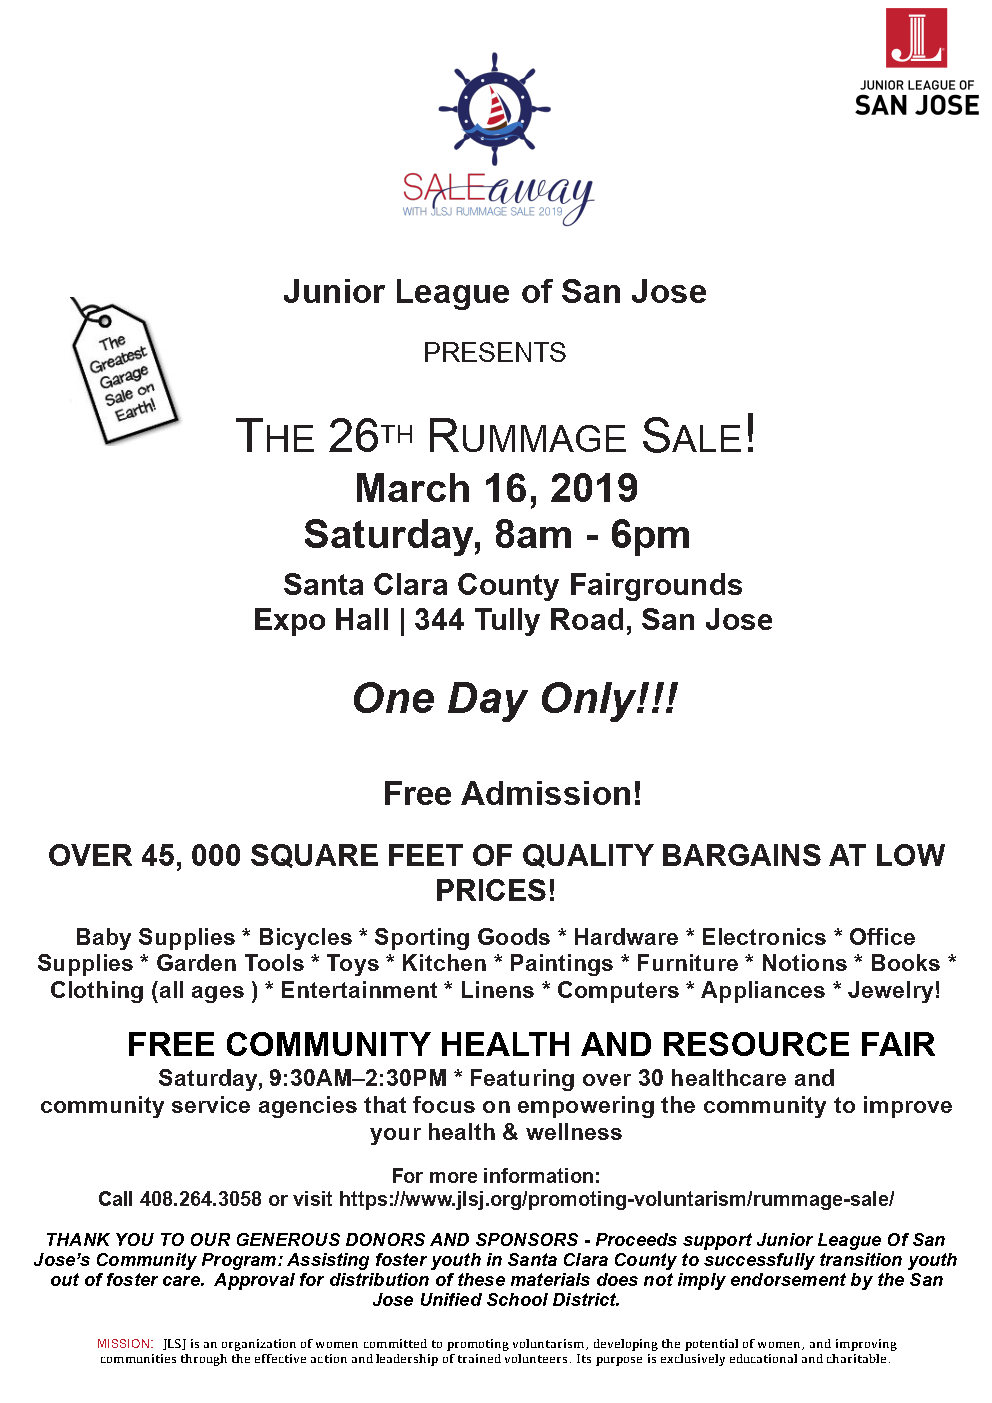 Rummage Sale | Junior League of San Jose